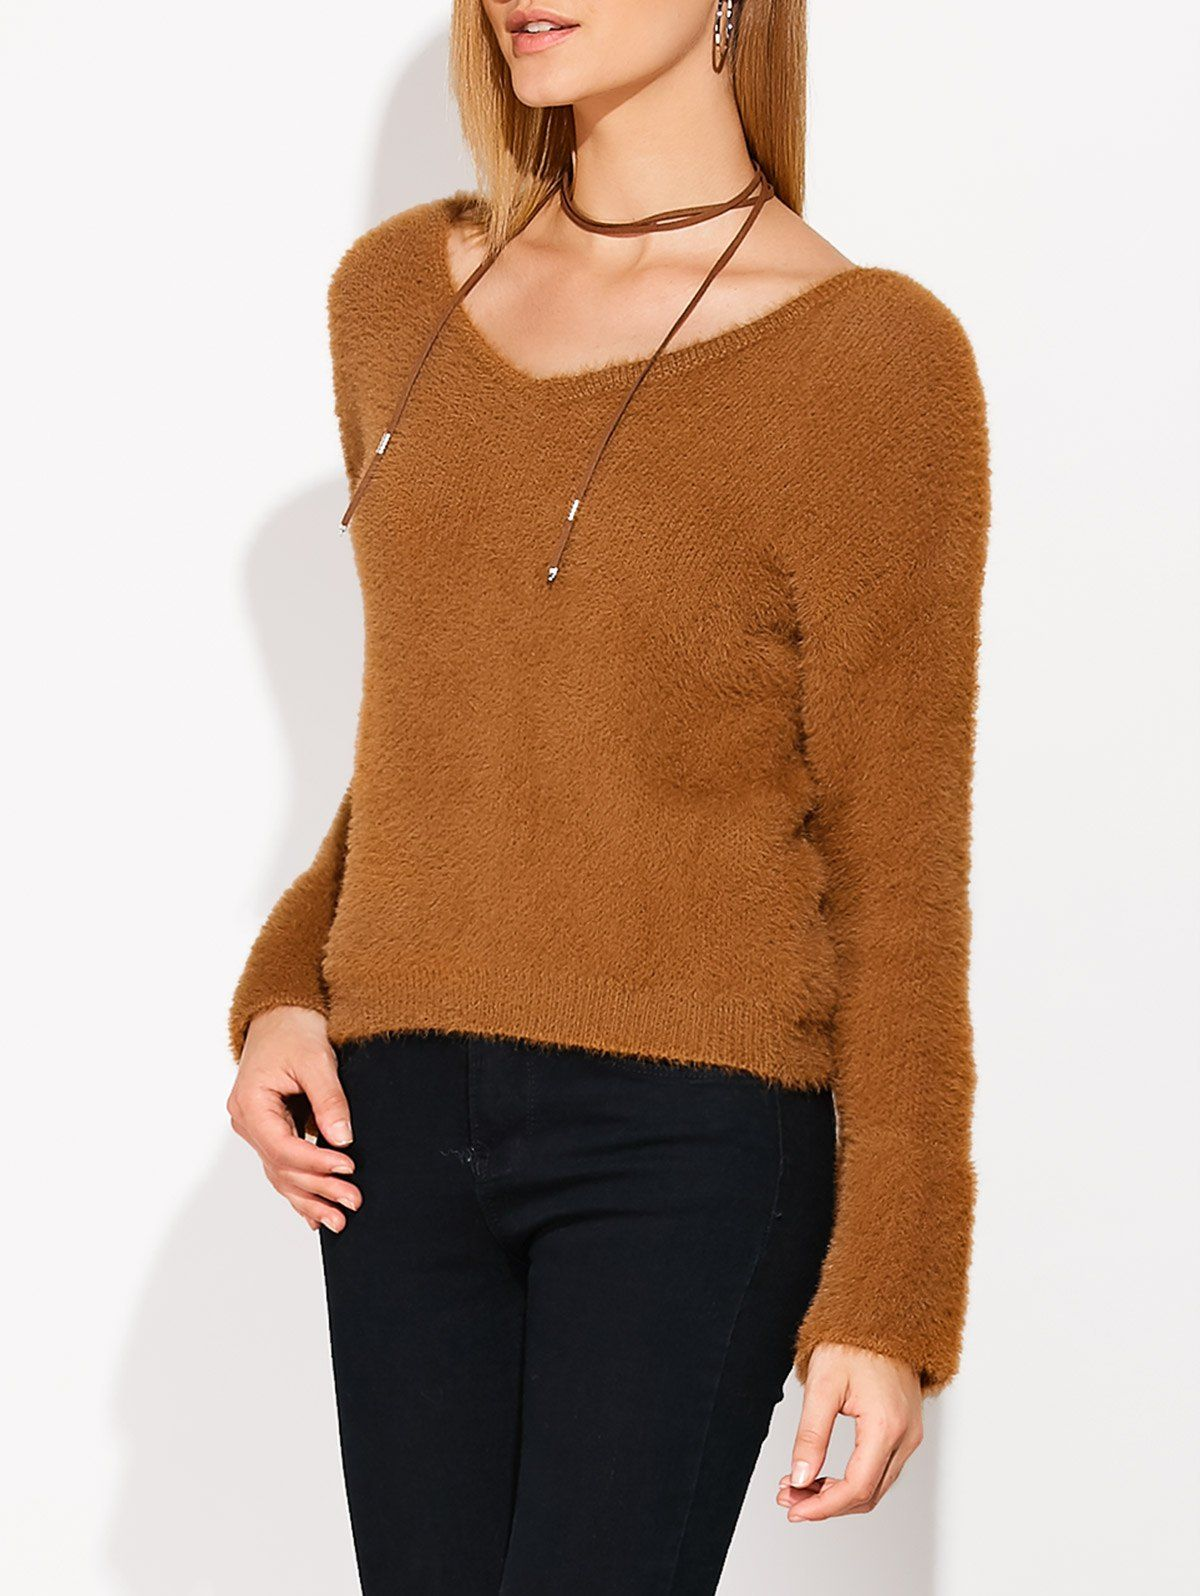 V Neck Lace Up Fuzzy Sweater in Light Brown | Sammydress.com ...